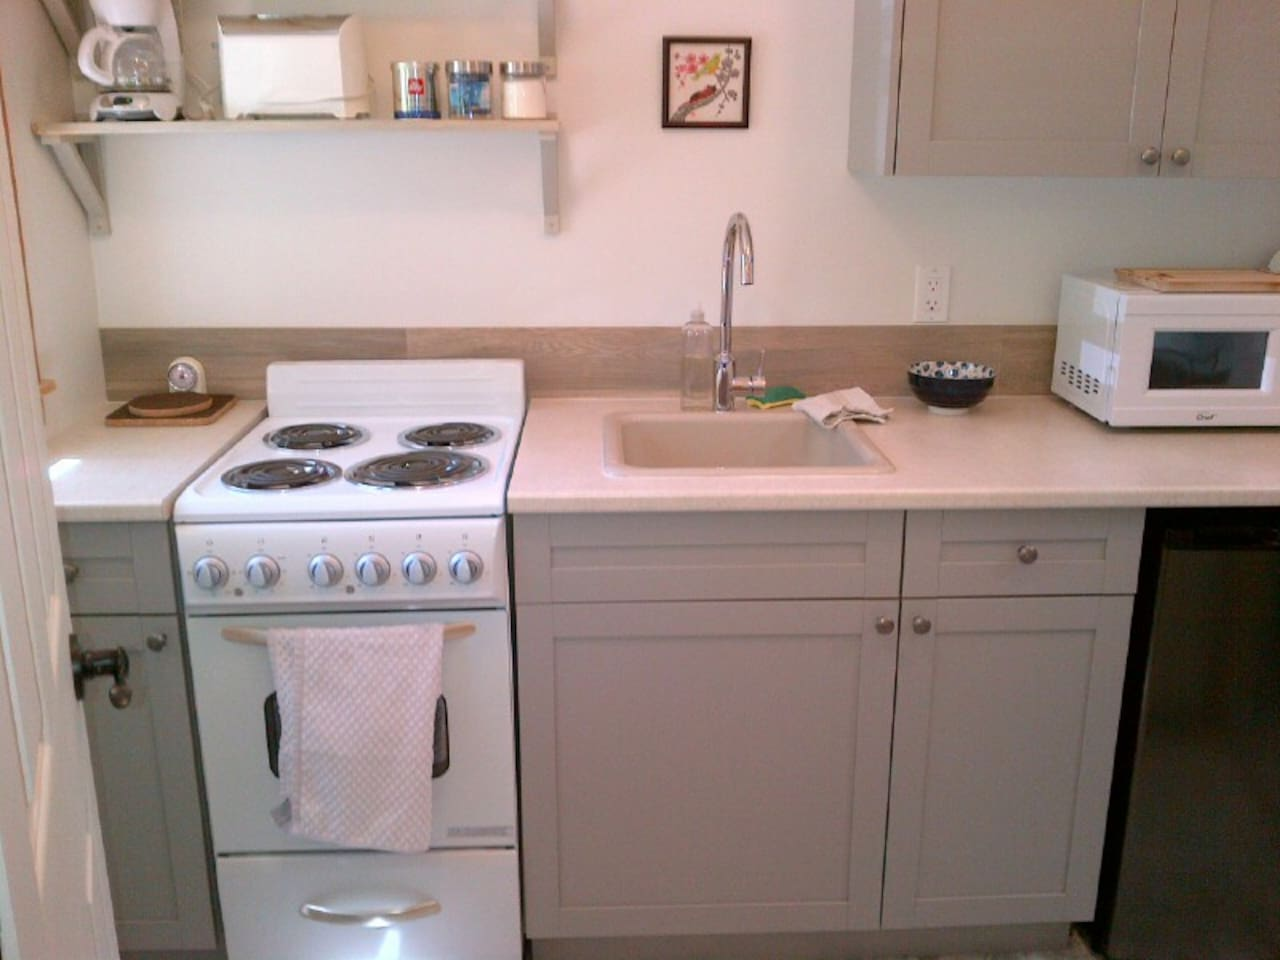 Kitchen small appliances victoria bc - Dragonfly Guest Suite Guest Suites For Rent In Victoria British Columbia Canada